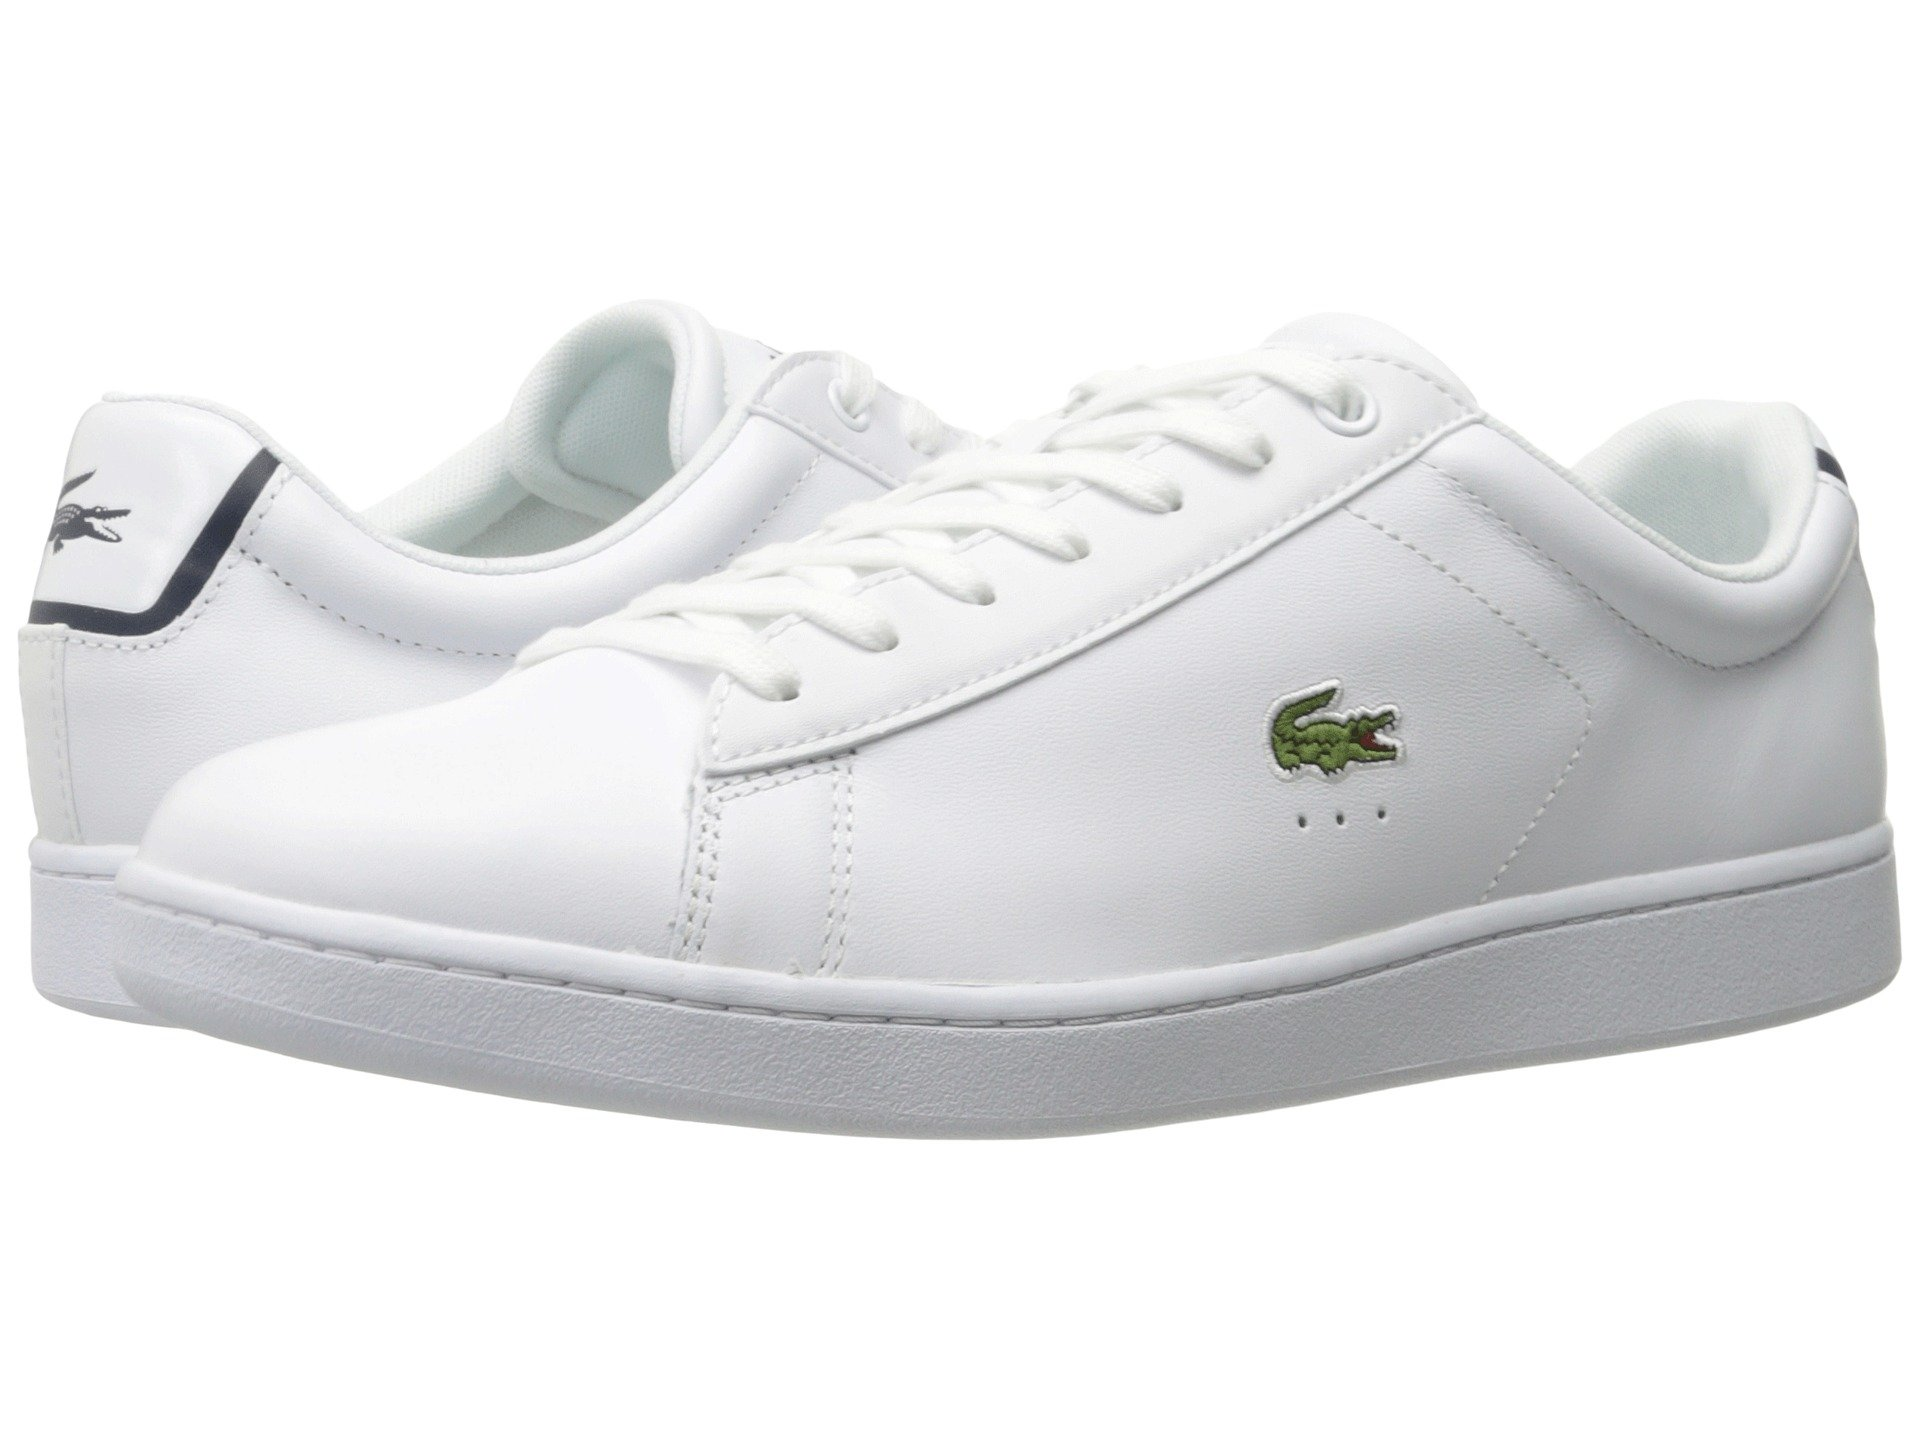 3652474653054c Men s Lacoste Shoes + FREE SHIPPING